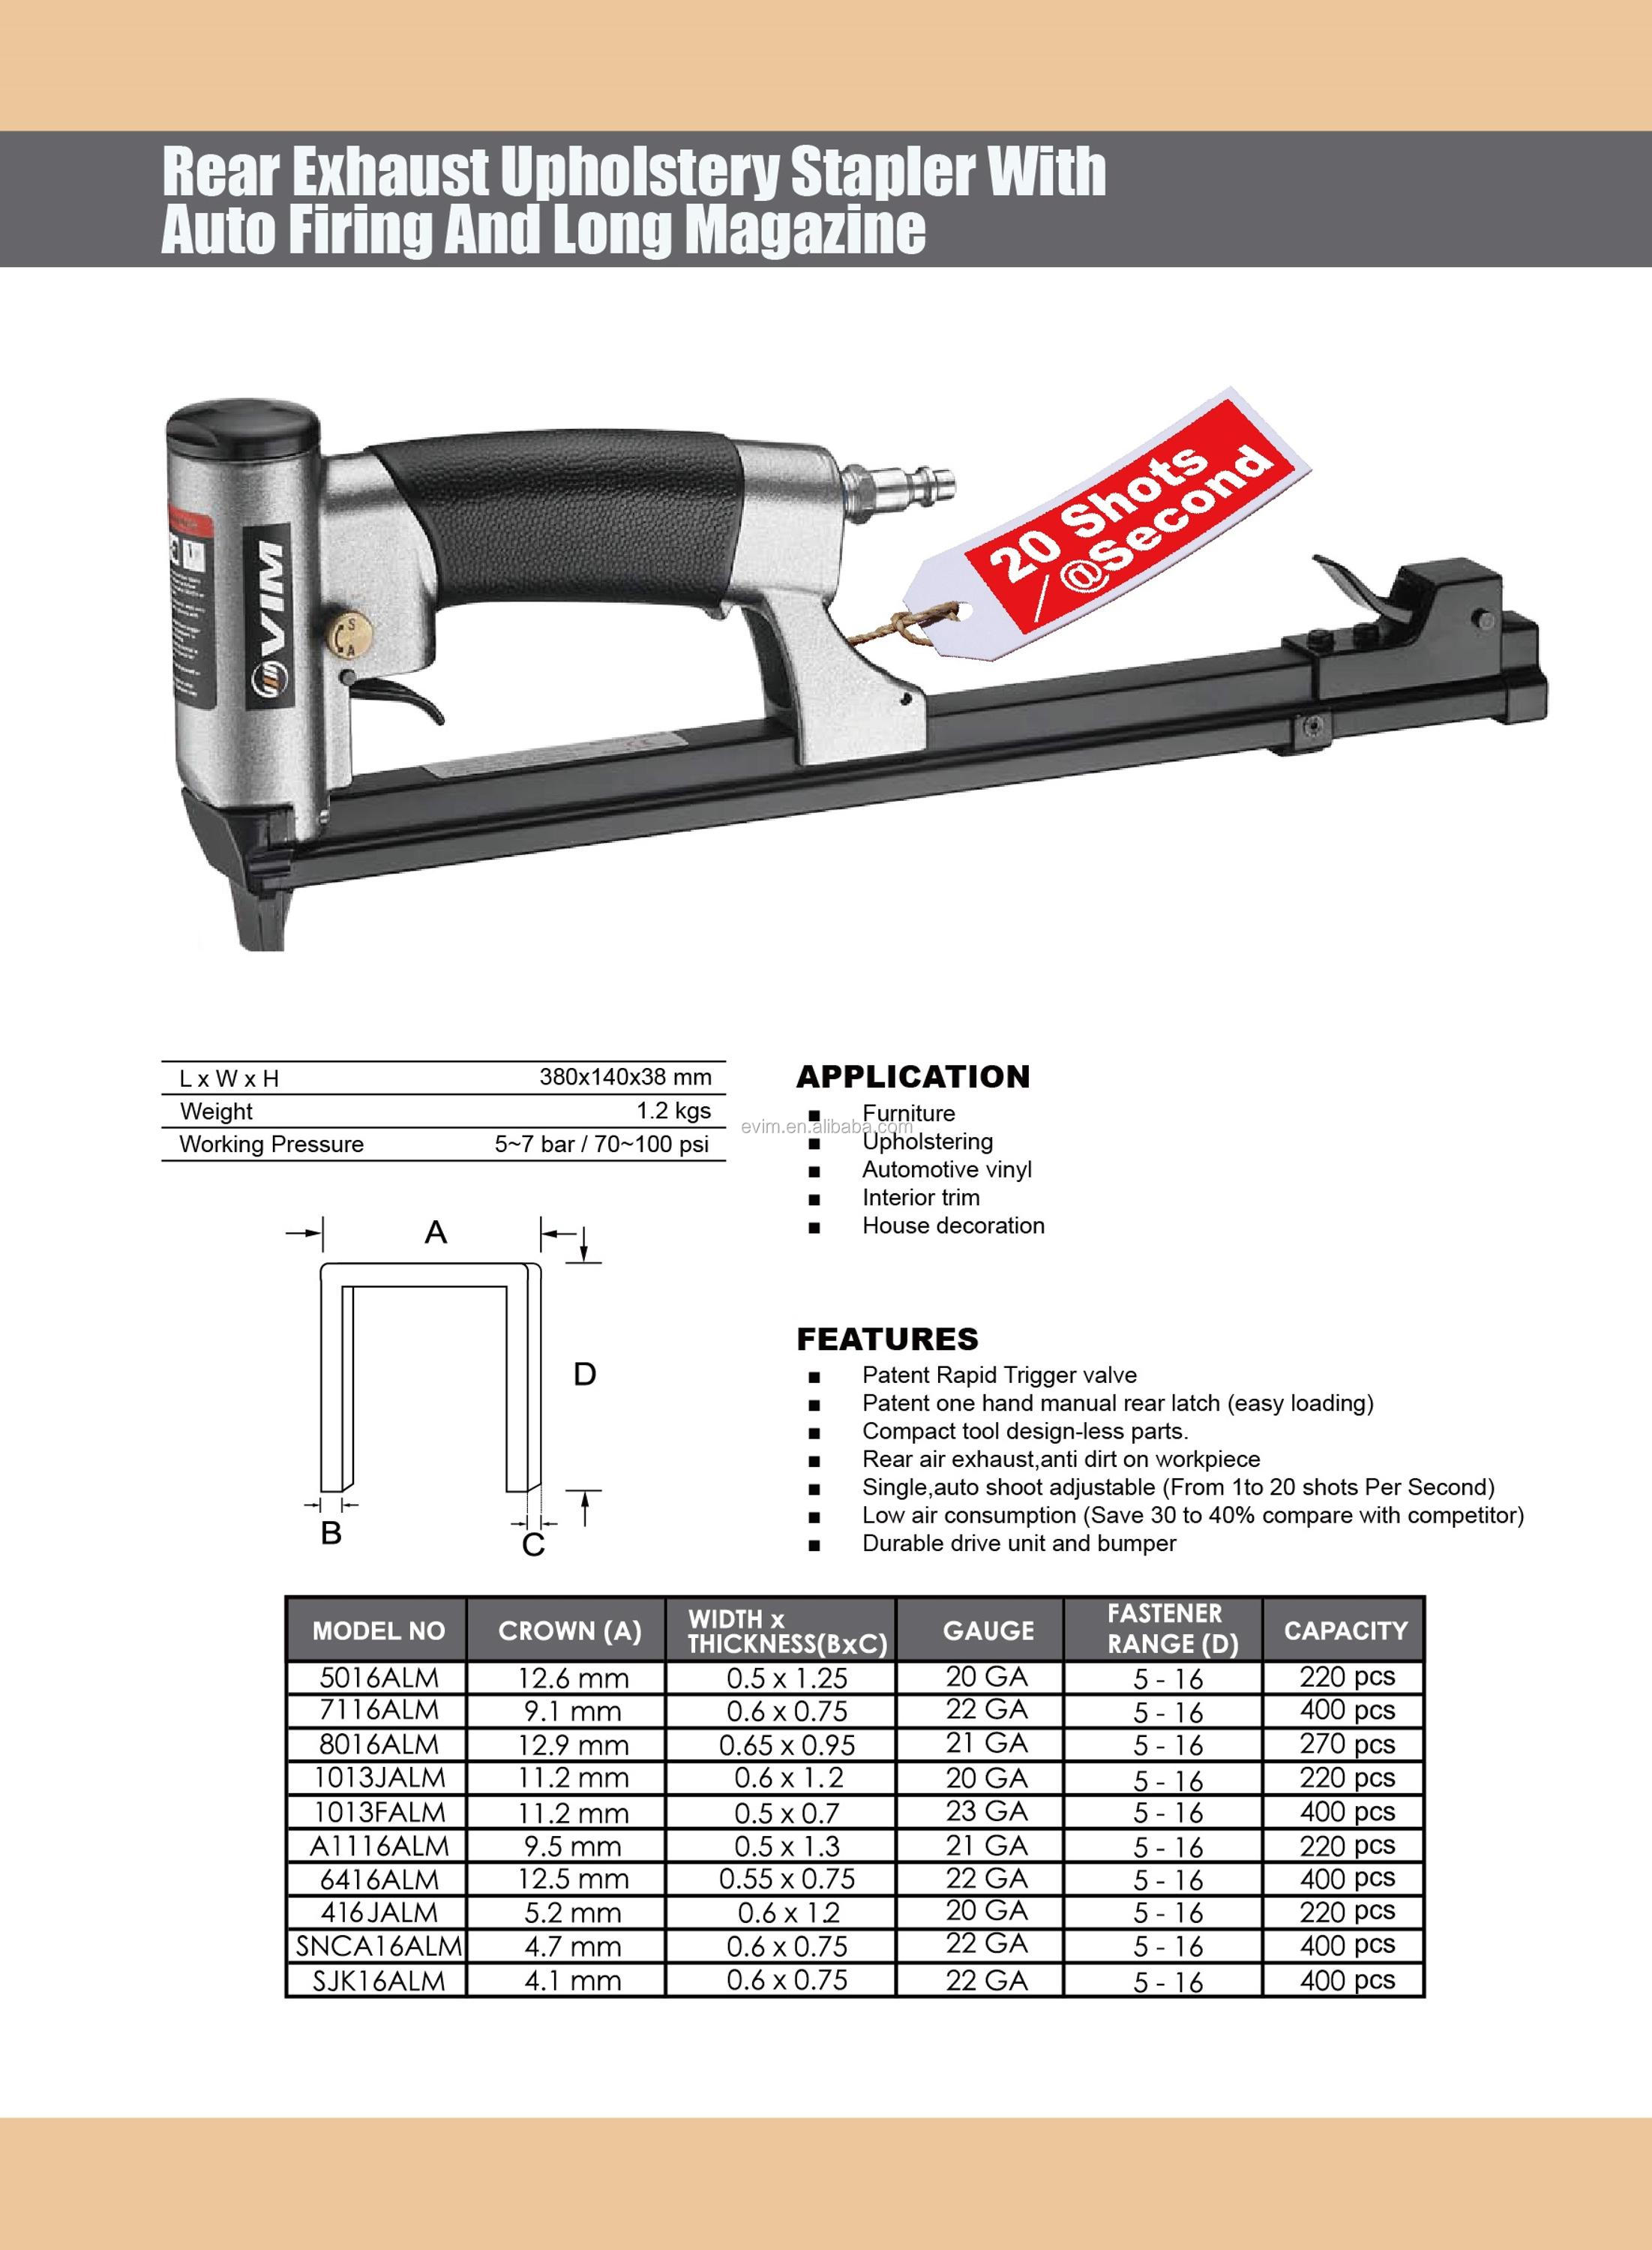 5016ALM 20 Gauge Rear Exhaust Upholstery Stapler with Auto Firing and Long Magazine